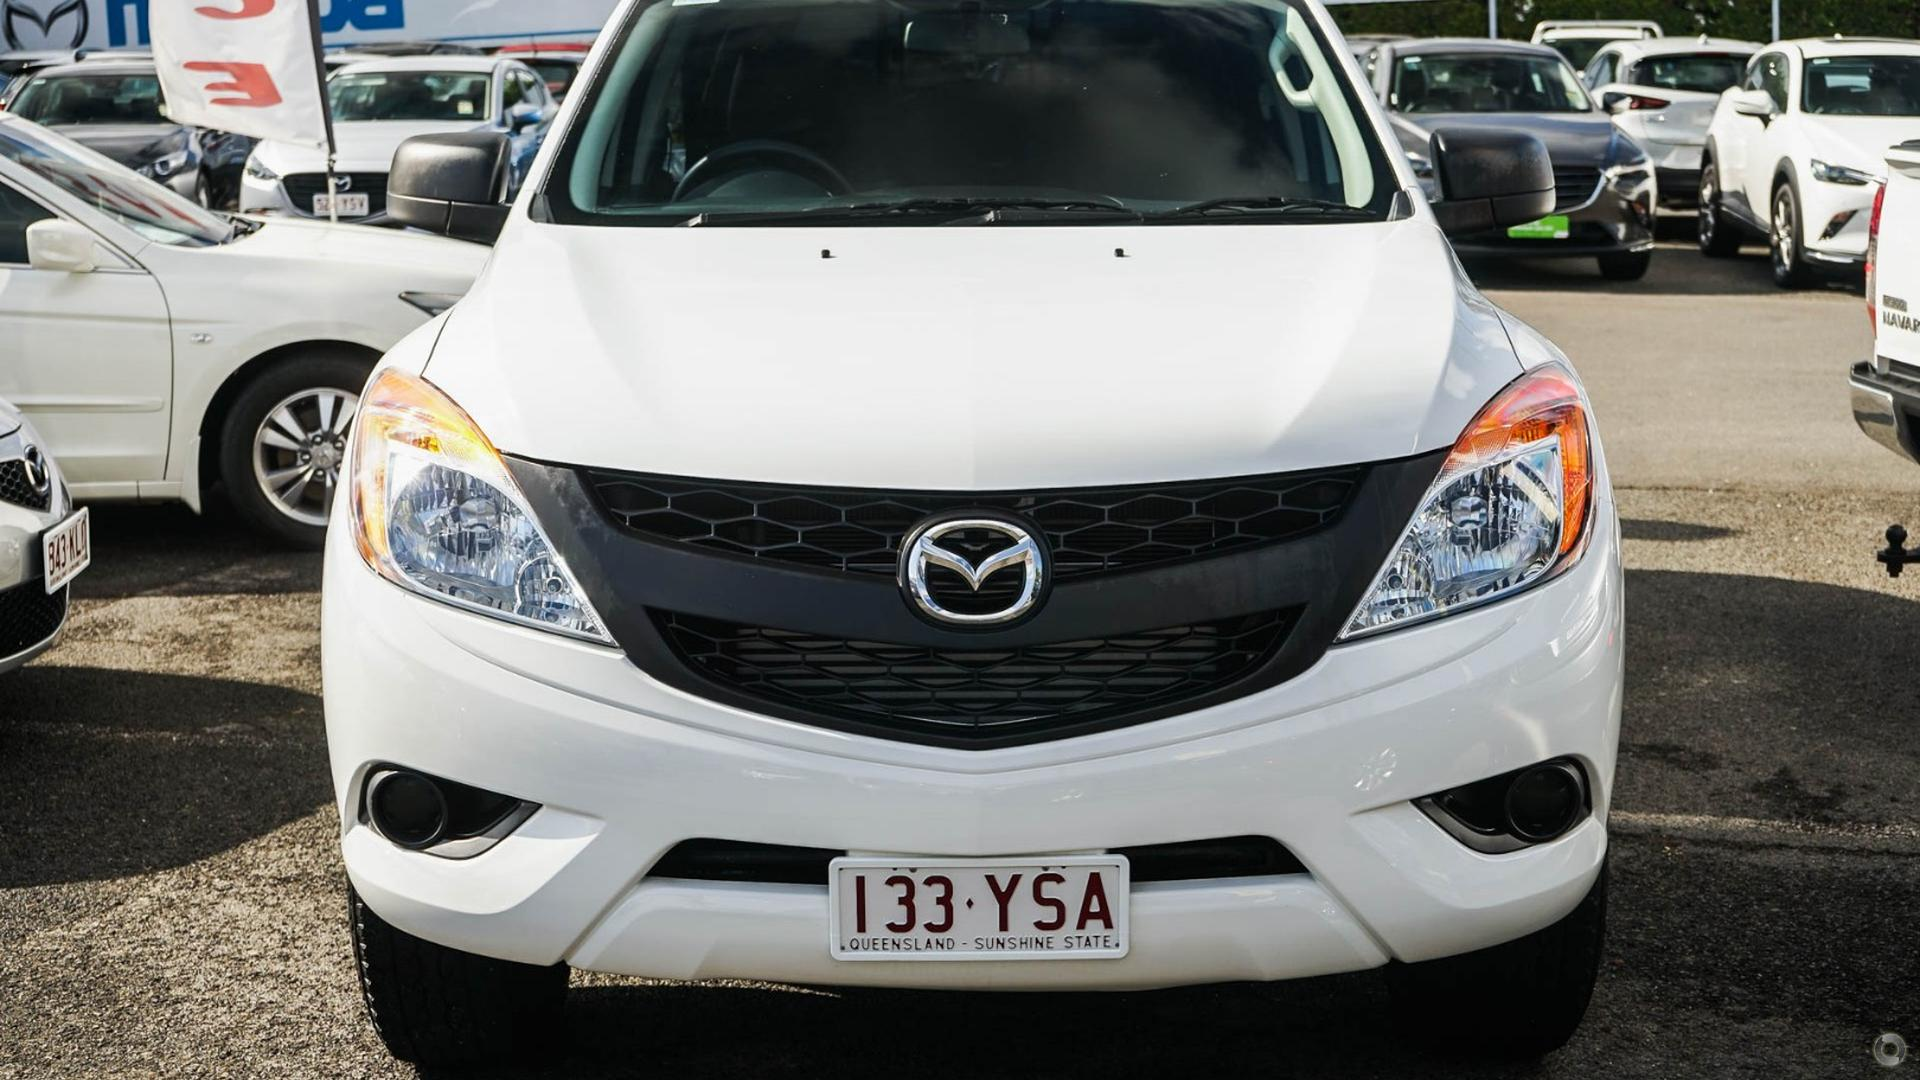 2011 Mazda Bt-50 XT Hi-Rider UP